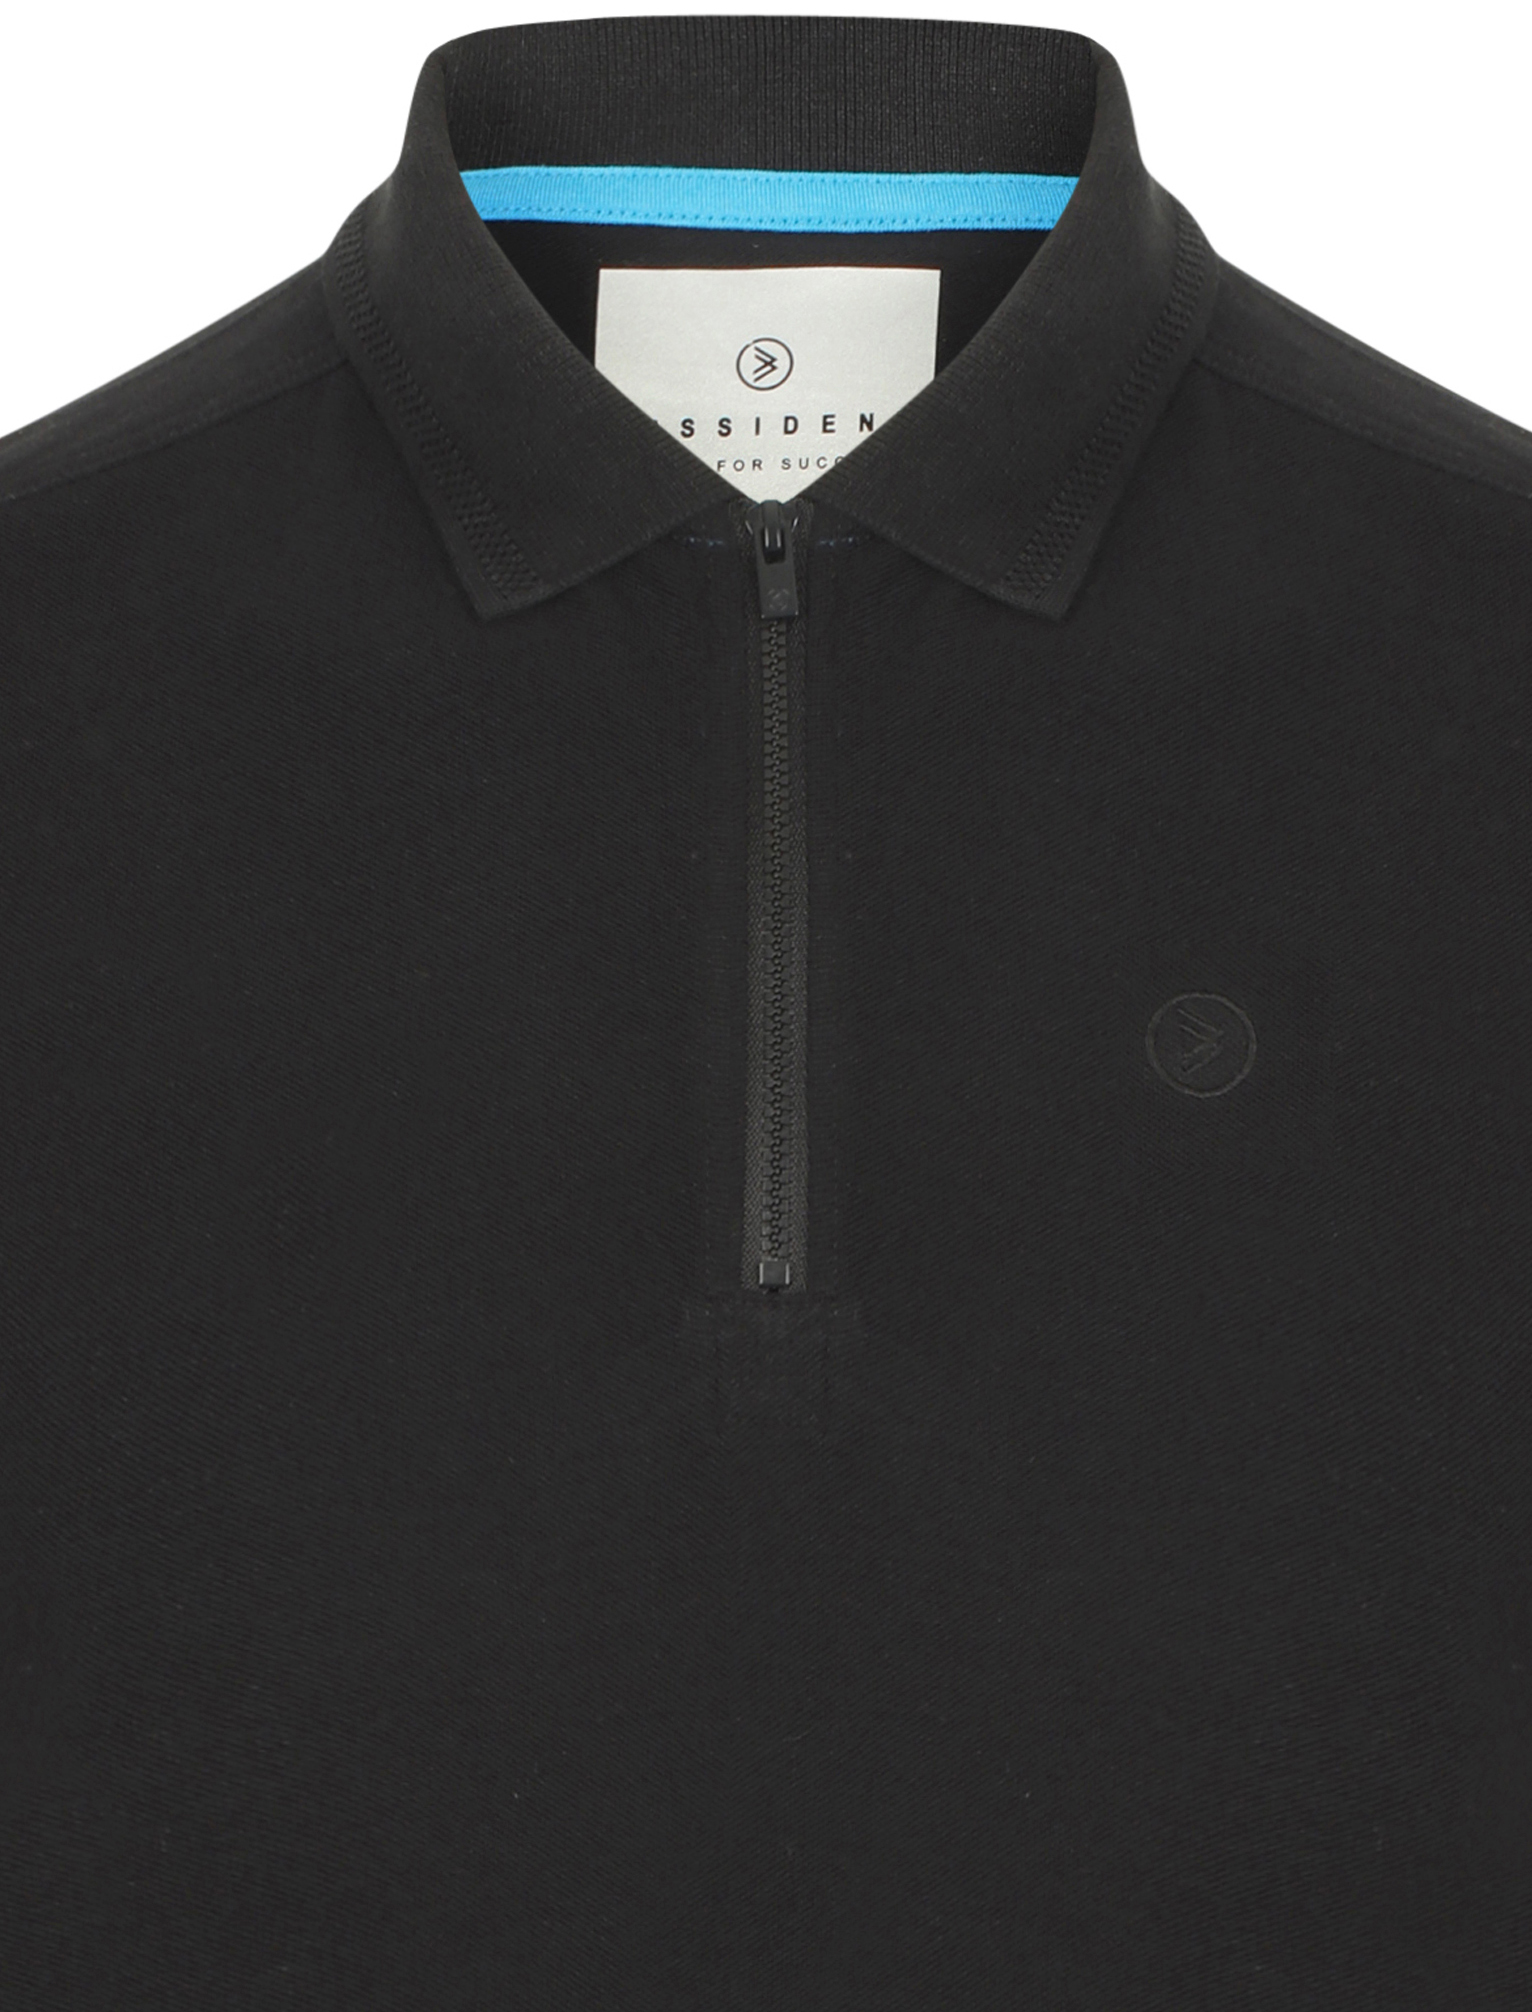 Dissident-Men-039-s-Fusa-Zip-Collar-Polo-Shirt-100-Pique-Cotton-T-Shirt-Casual-Top thumbnail 8